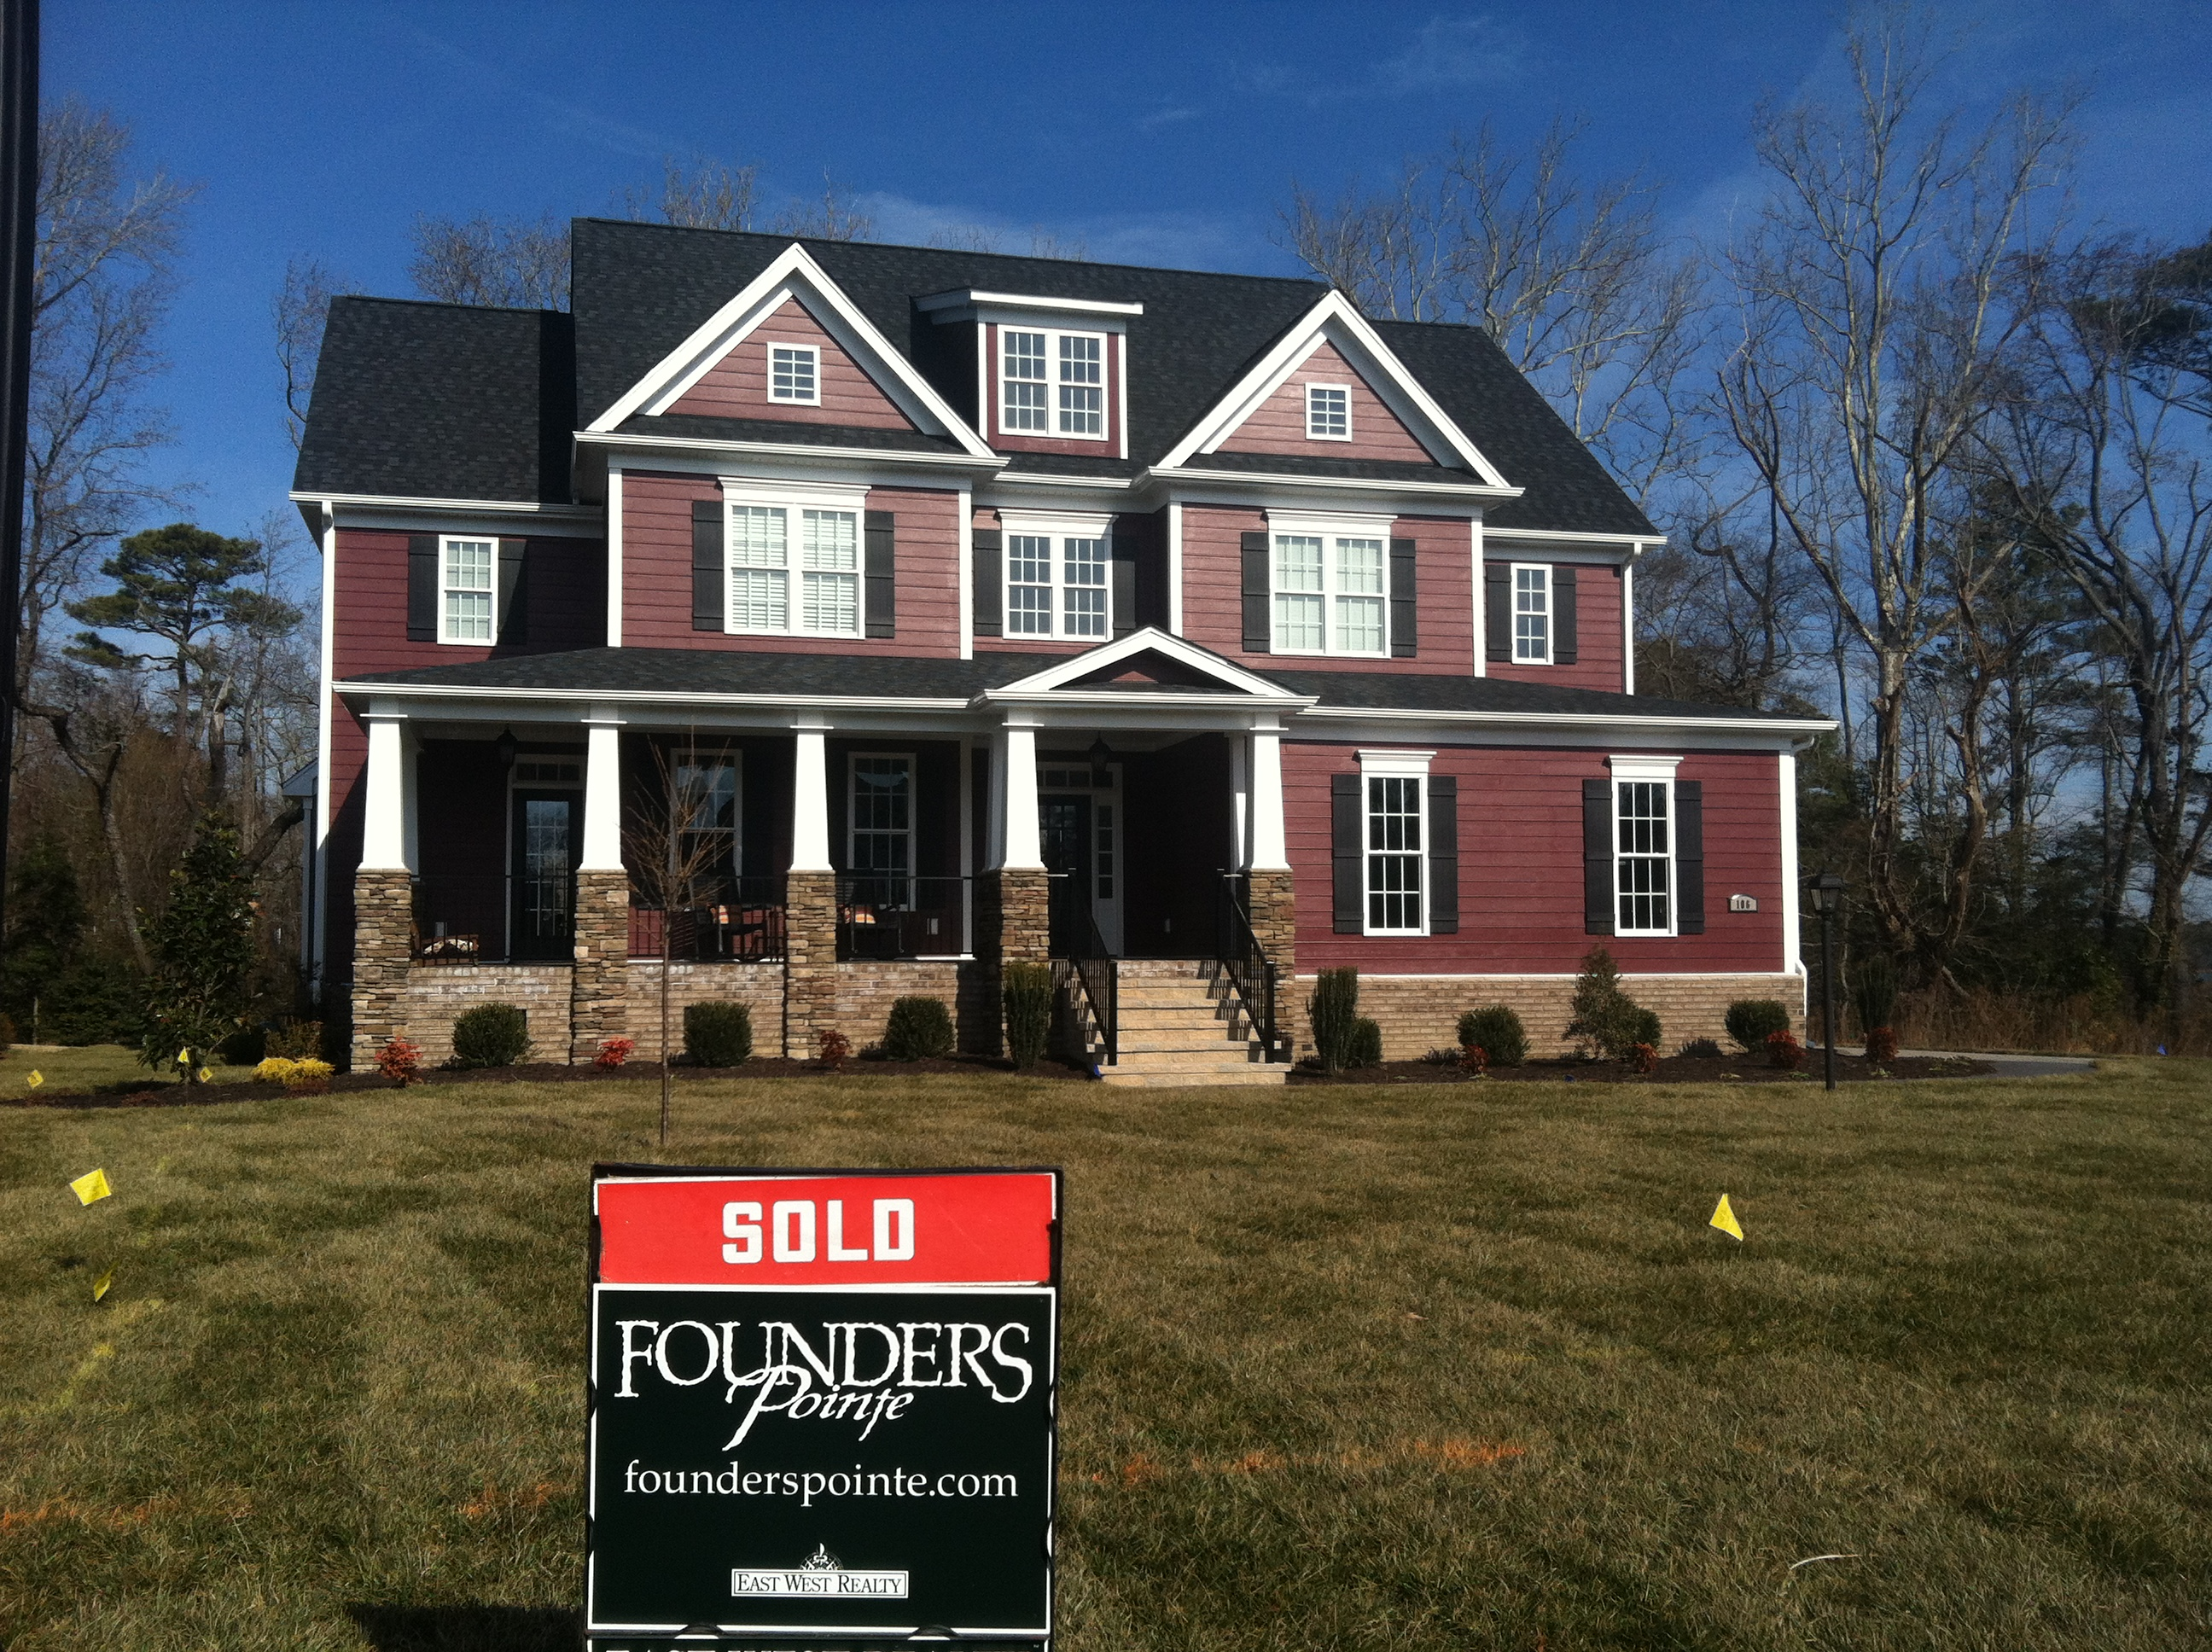 New home sales are up at founders pointe founders pointe for Home builders in west virginia